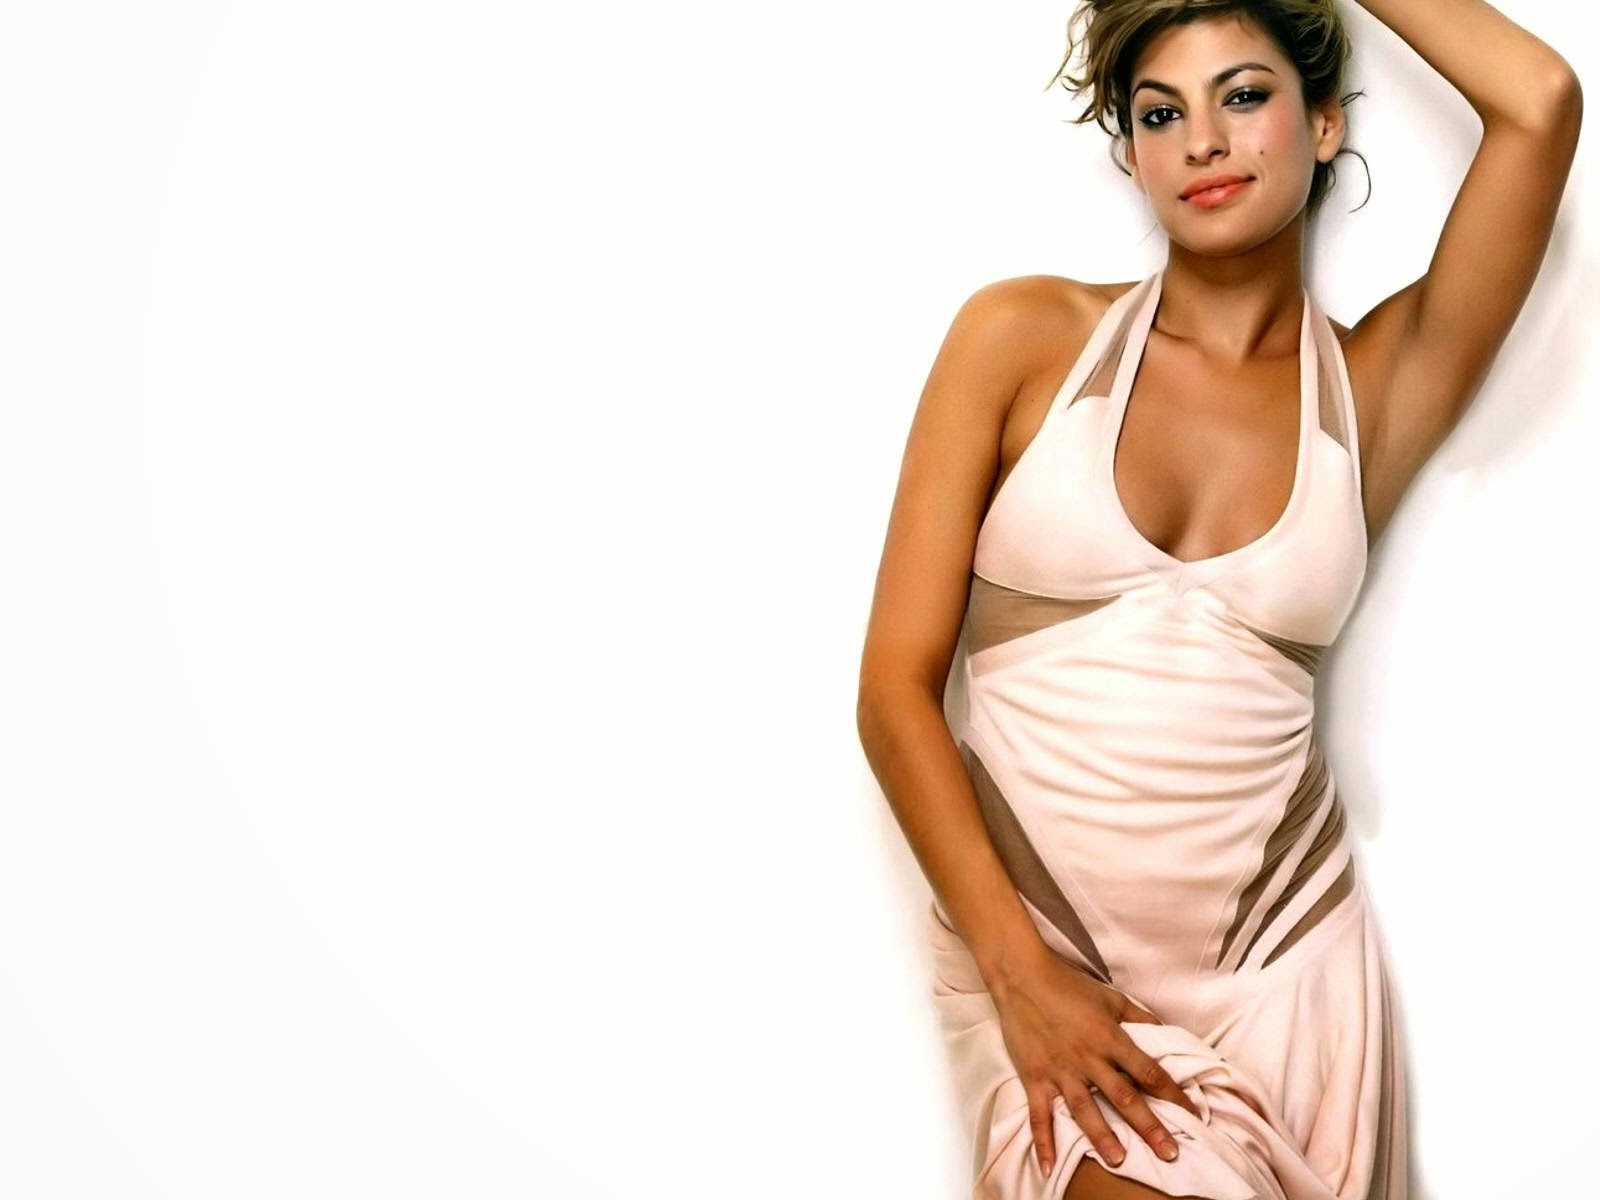 Eva mendes of hollywood actress in white dress wallpaper